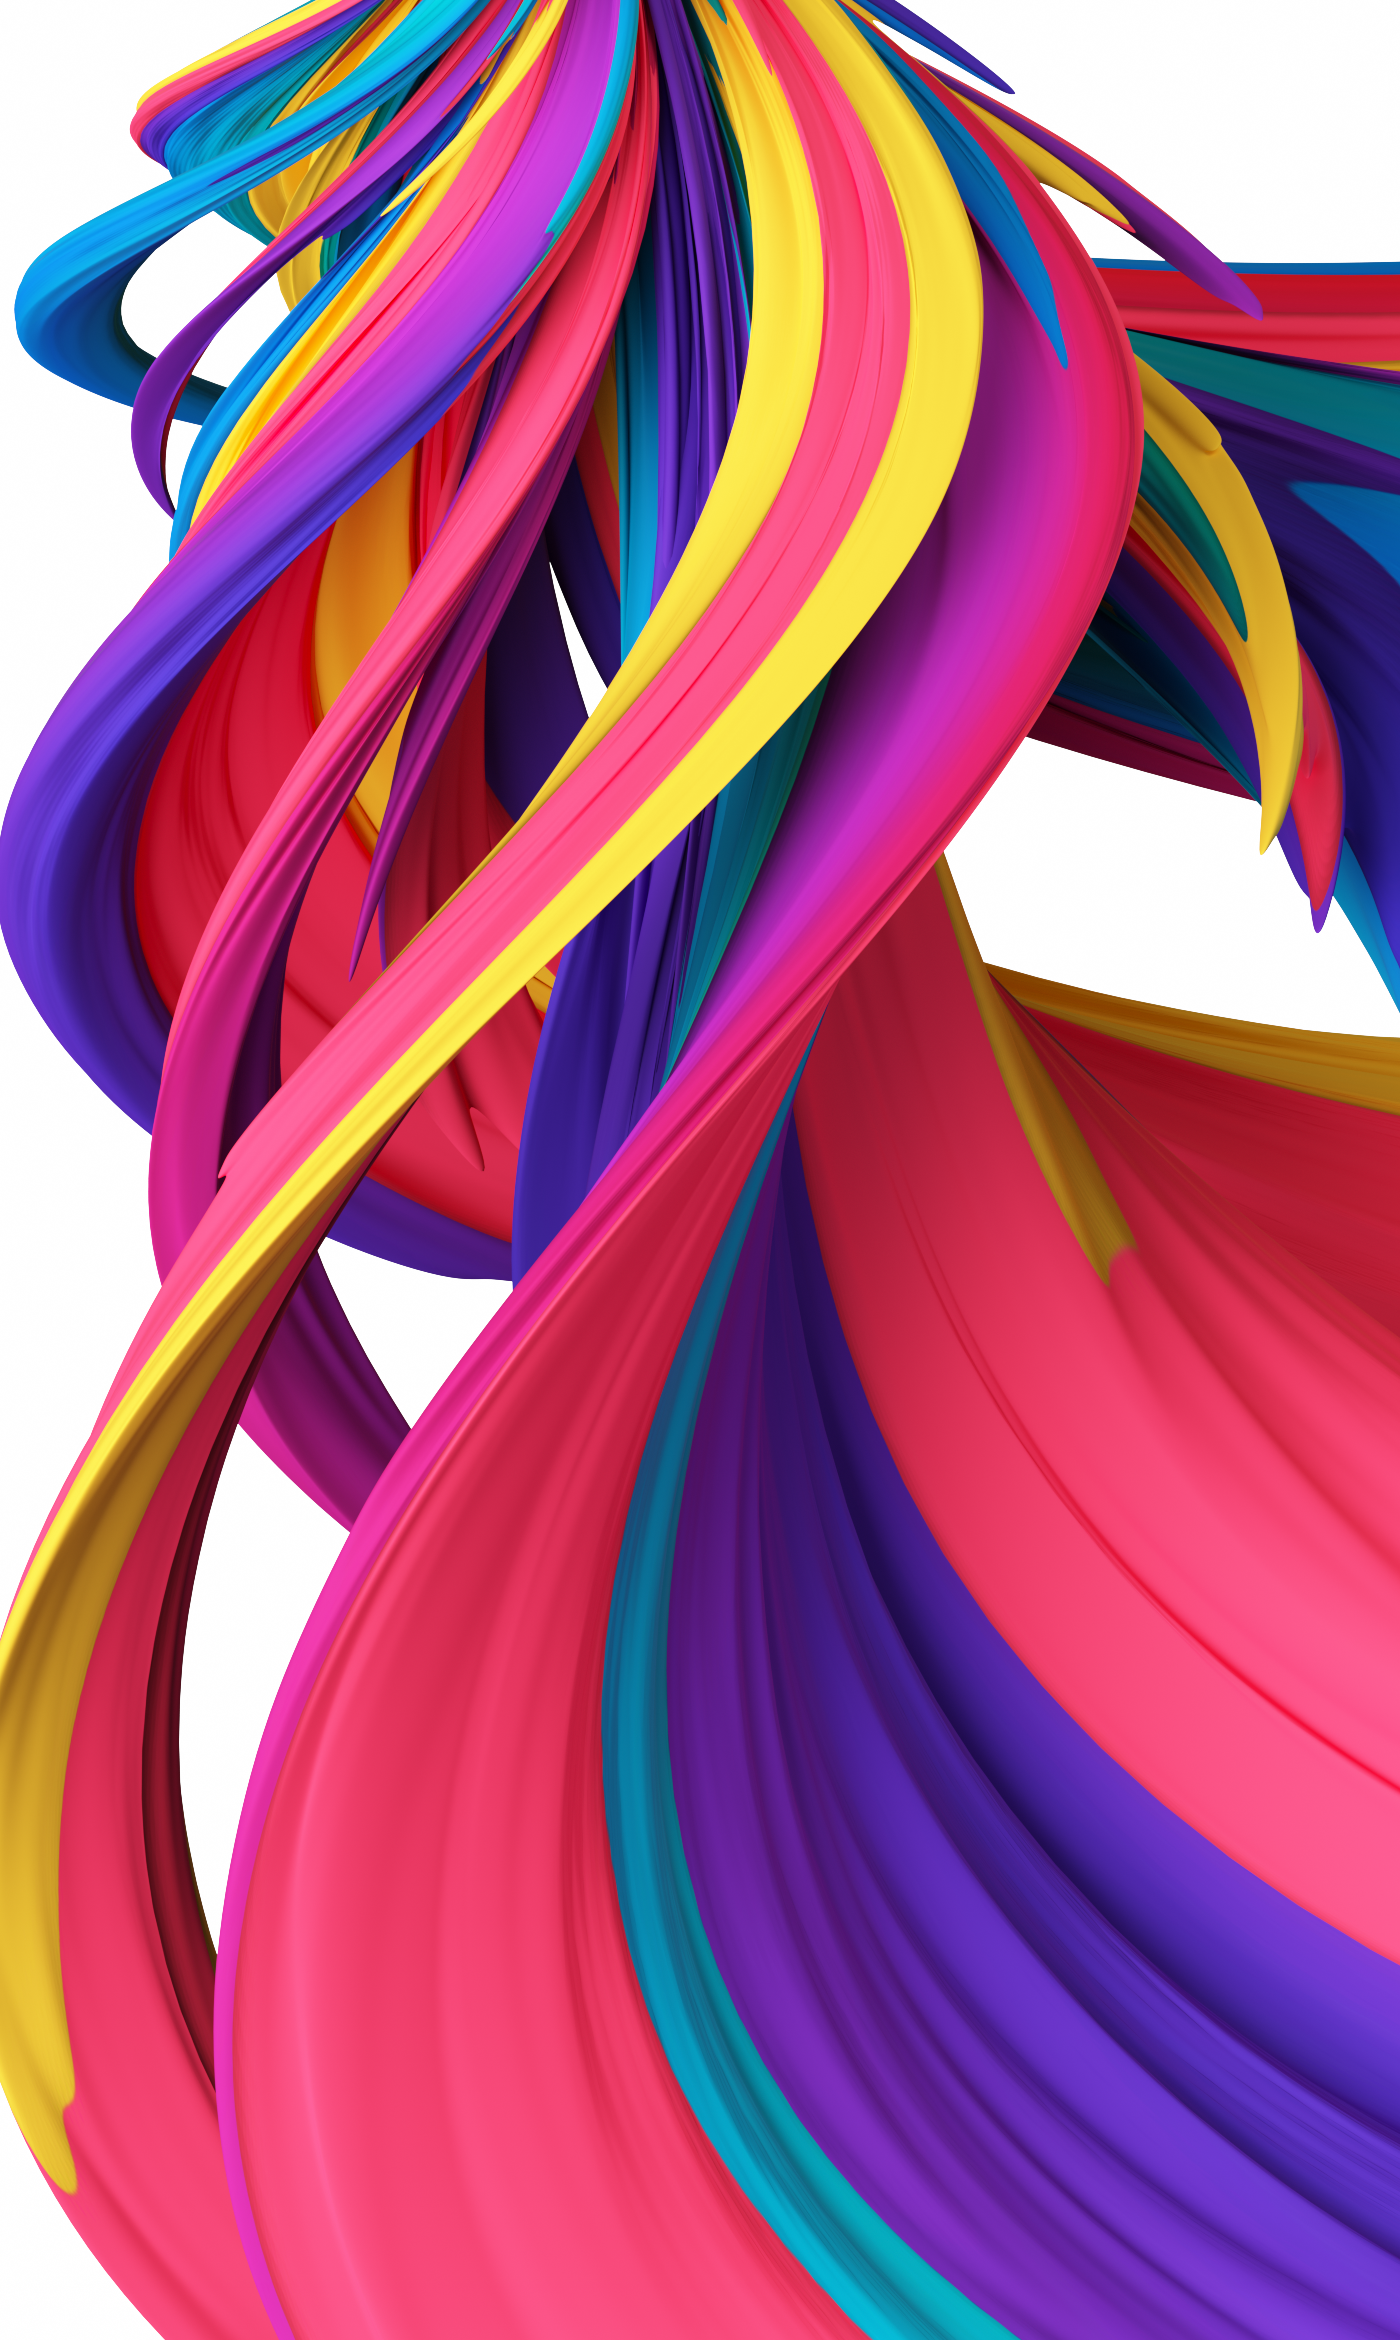 Curved Lines Series 1 0 On Behance Cool Backgrounds Wallpapers Abstract Iphone Wallpaper Lip Wallpaper